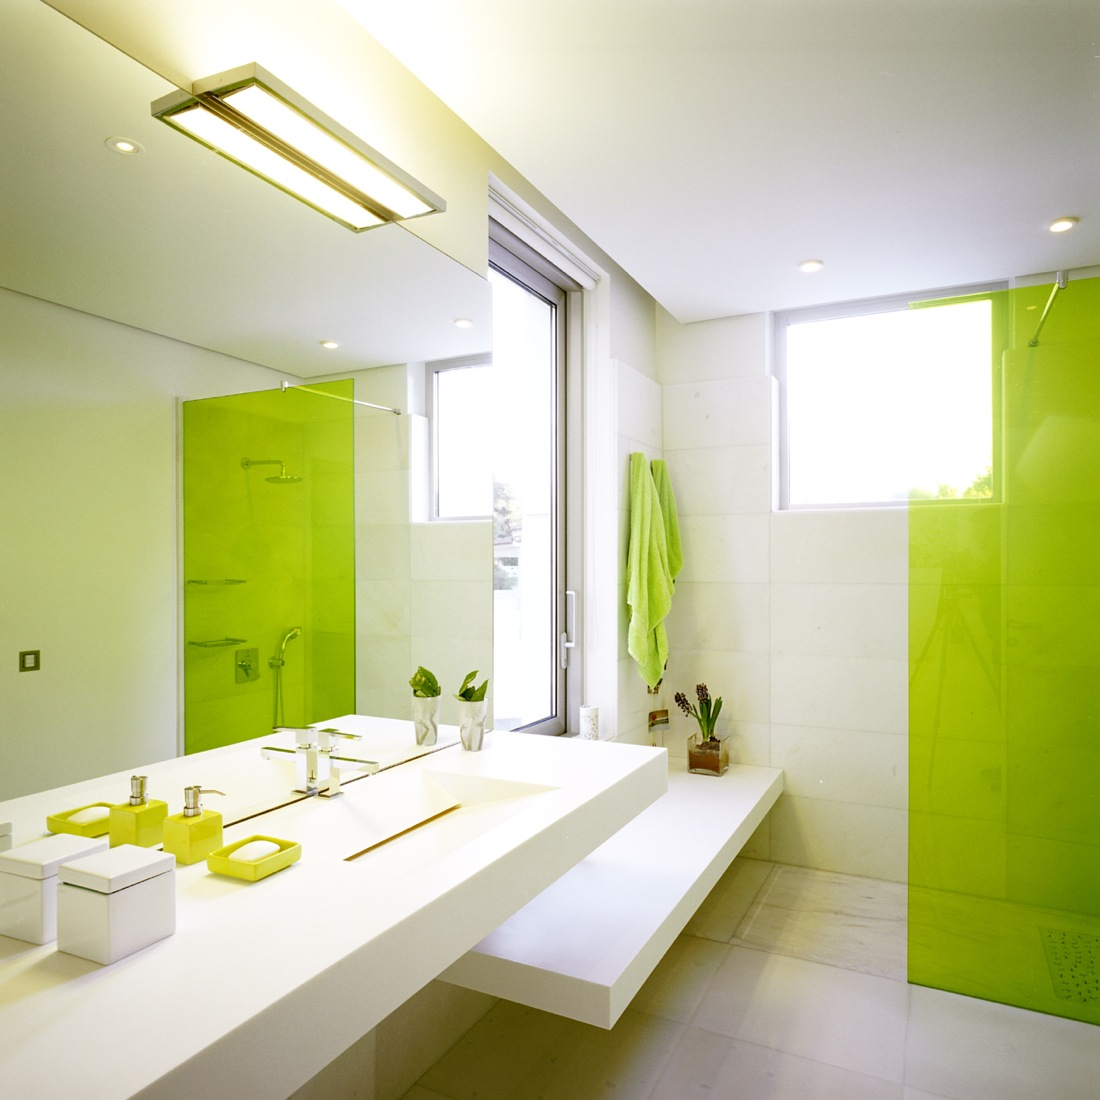 Minimalist bathroom designs home designs project Modern design of bathroom